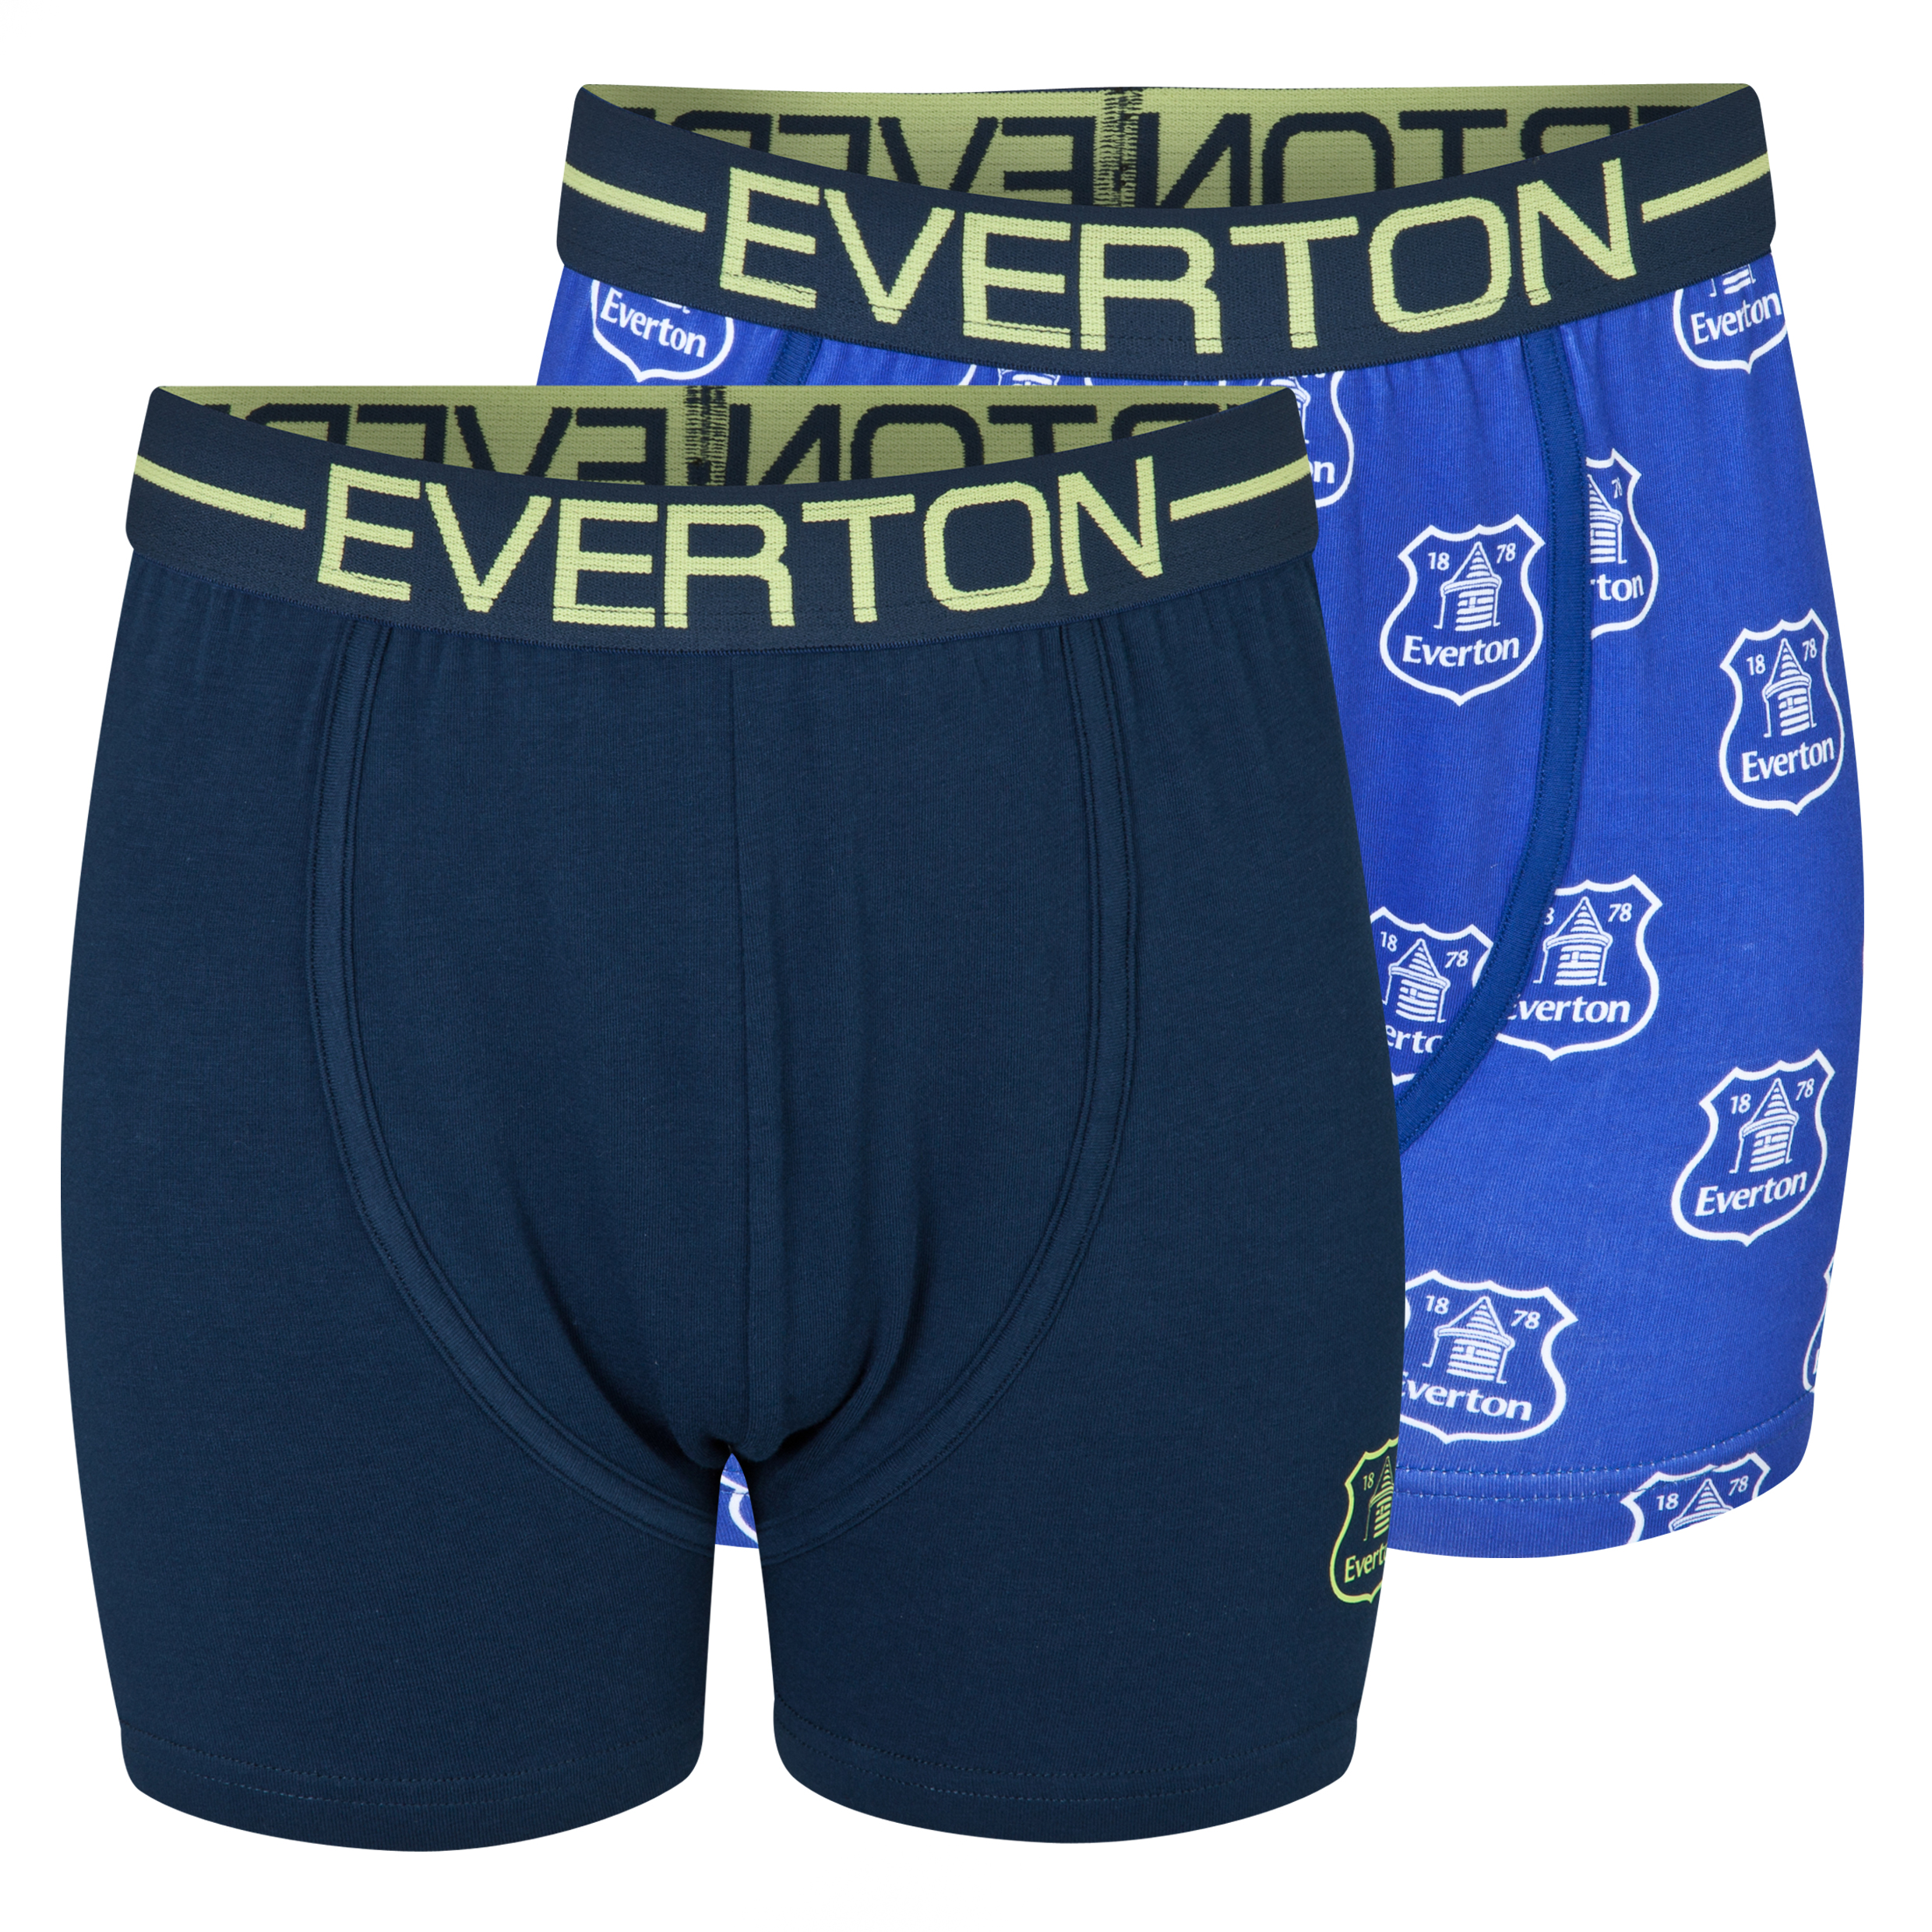 Everton 2PK Boxer Shorts - Boys Blue